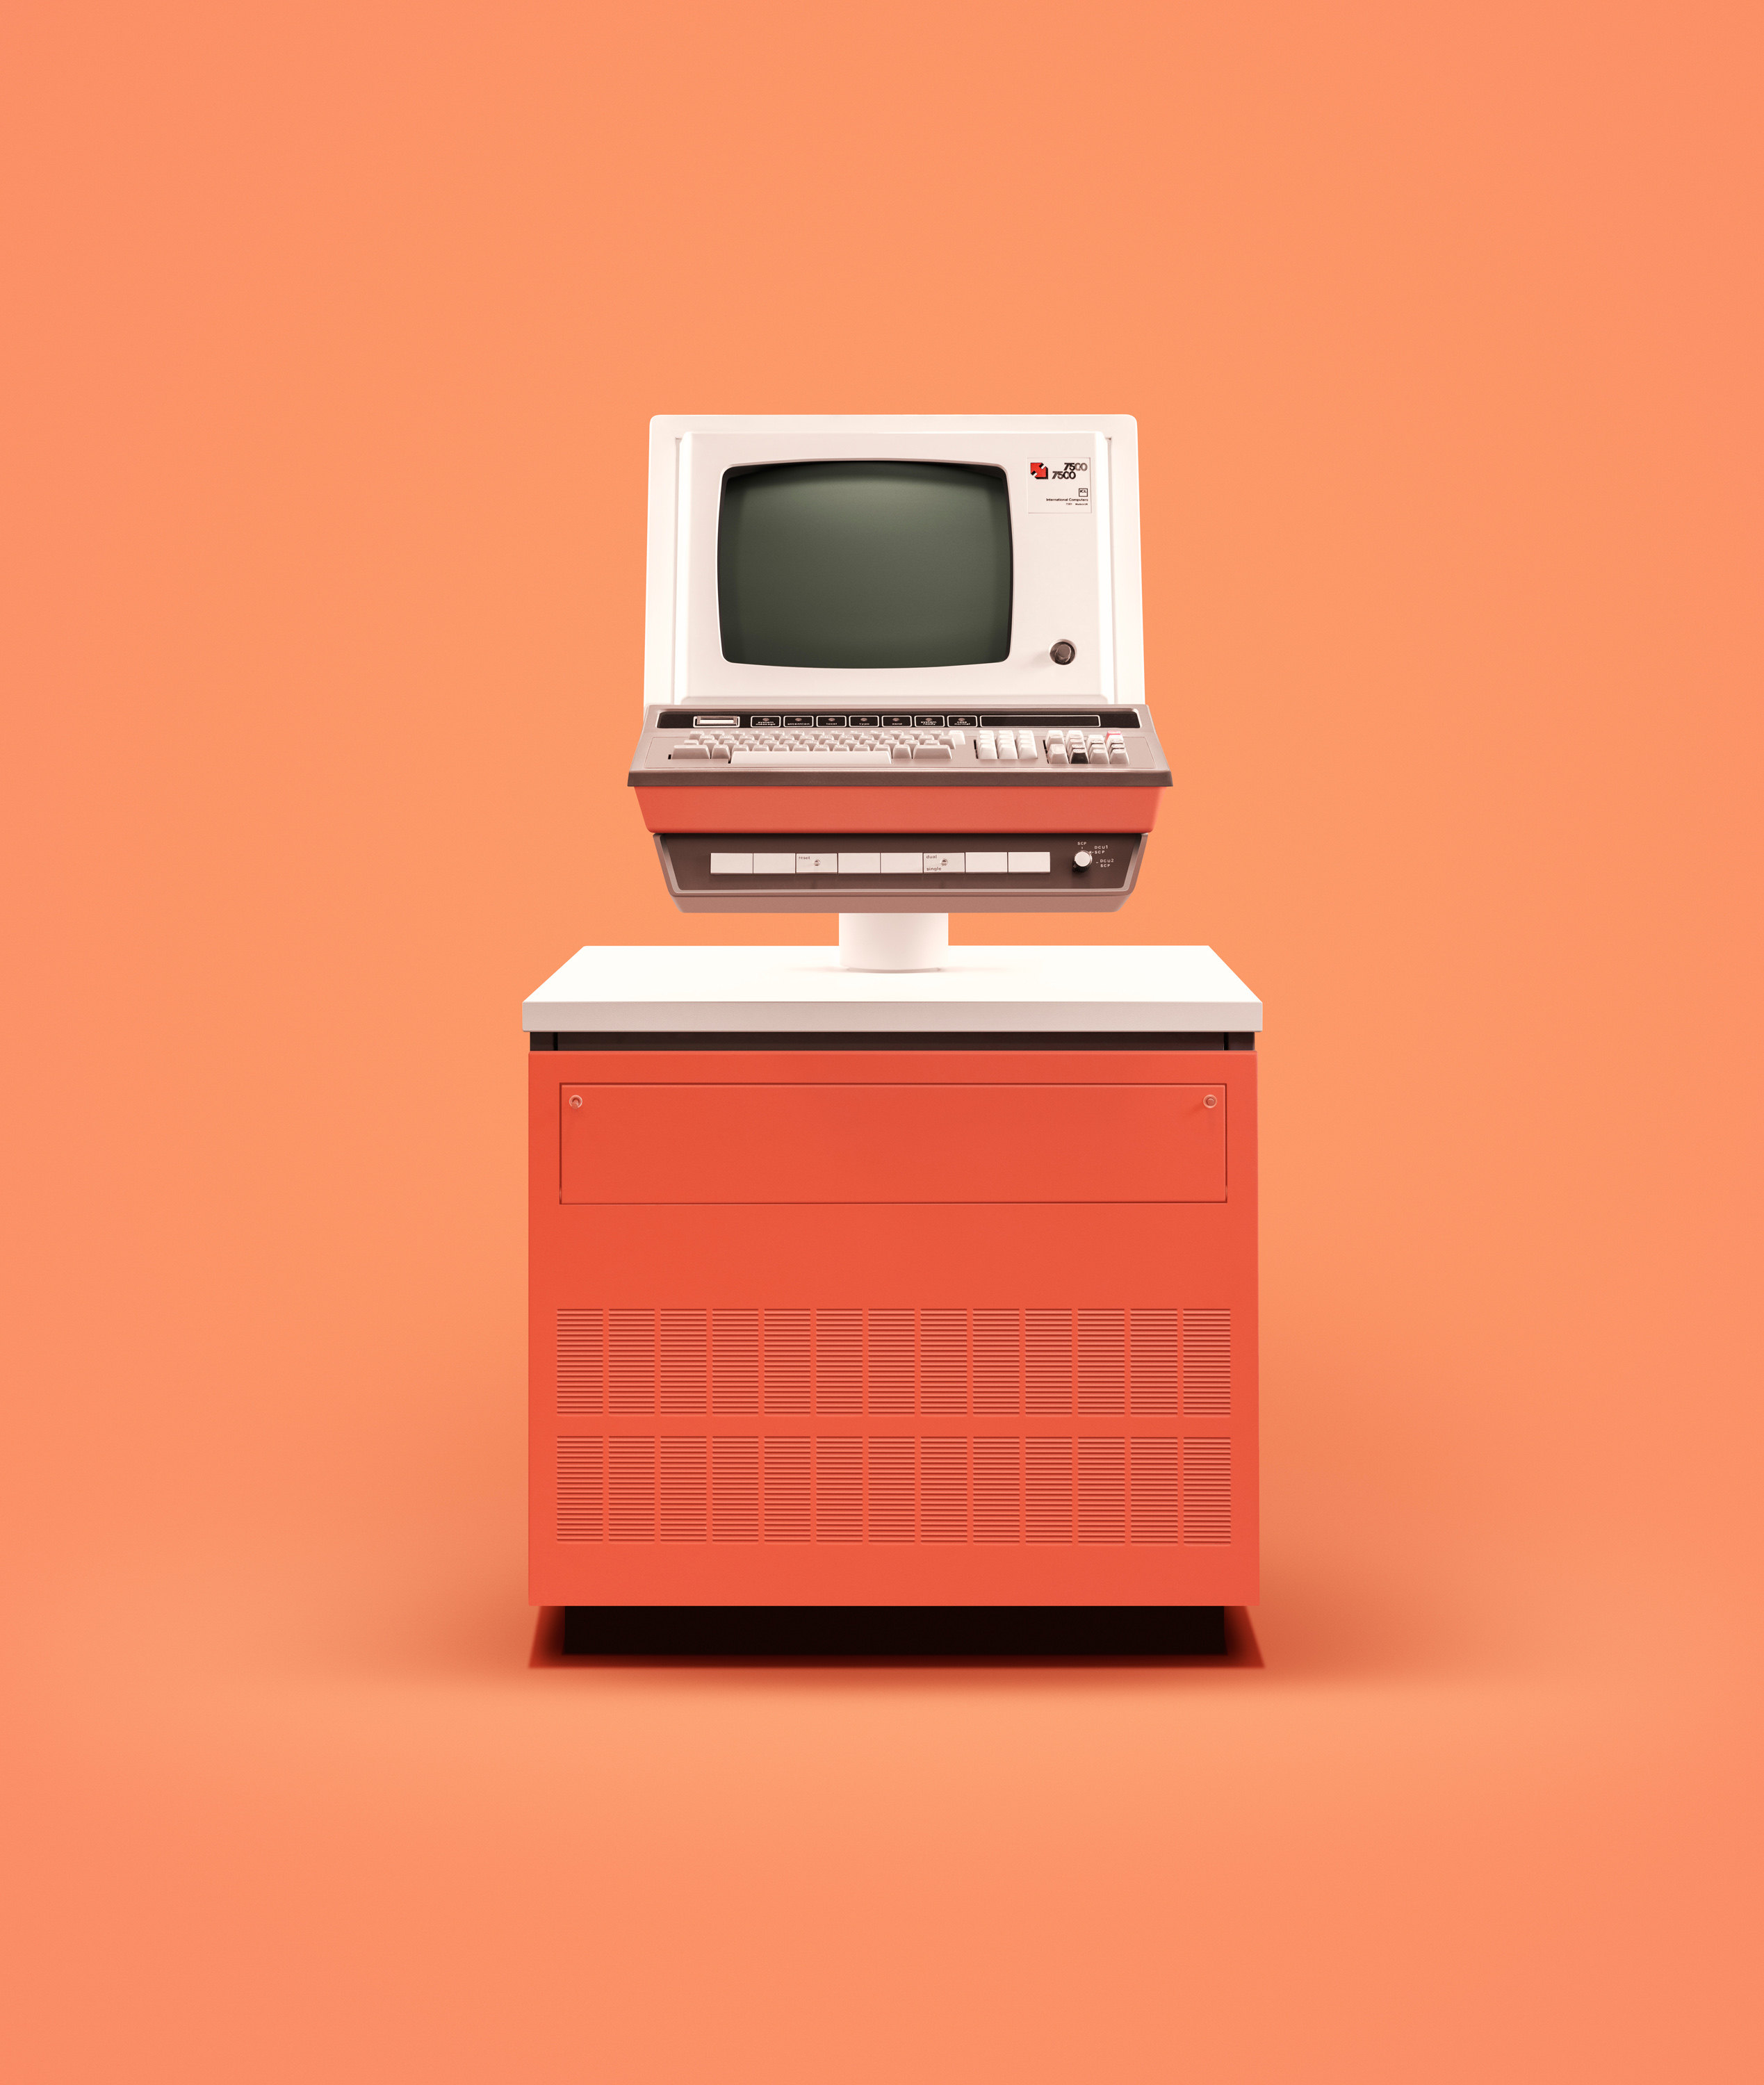 <p>The British-made ICL 7500 series from the 1970s included terminals and workstations designed for office use and, by the 1980s, to play games such as Pac­Man and Space Invaders.</p>